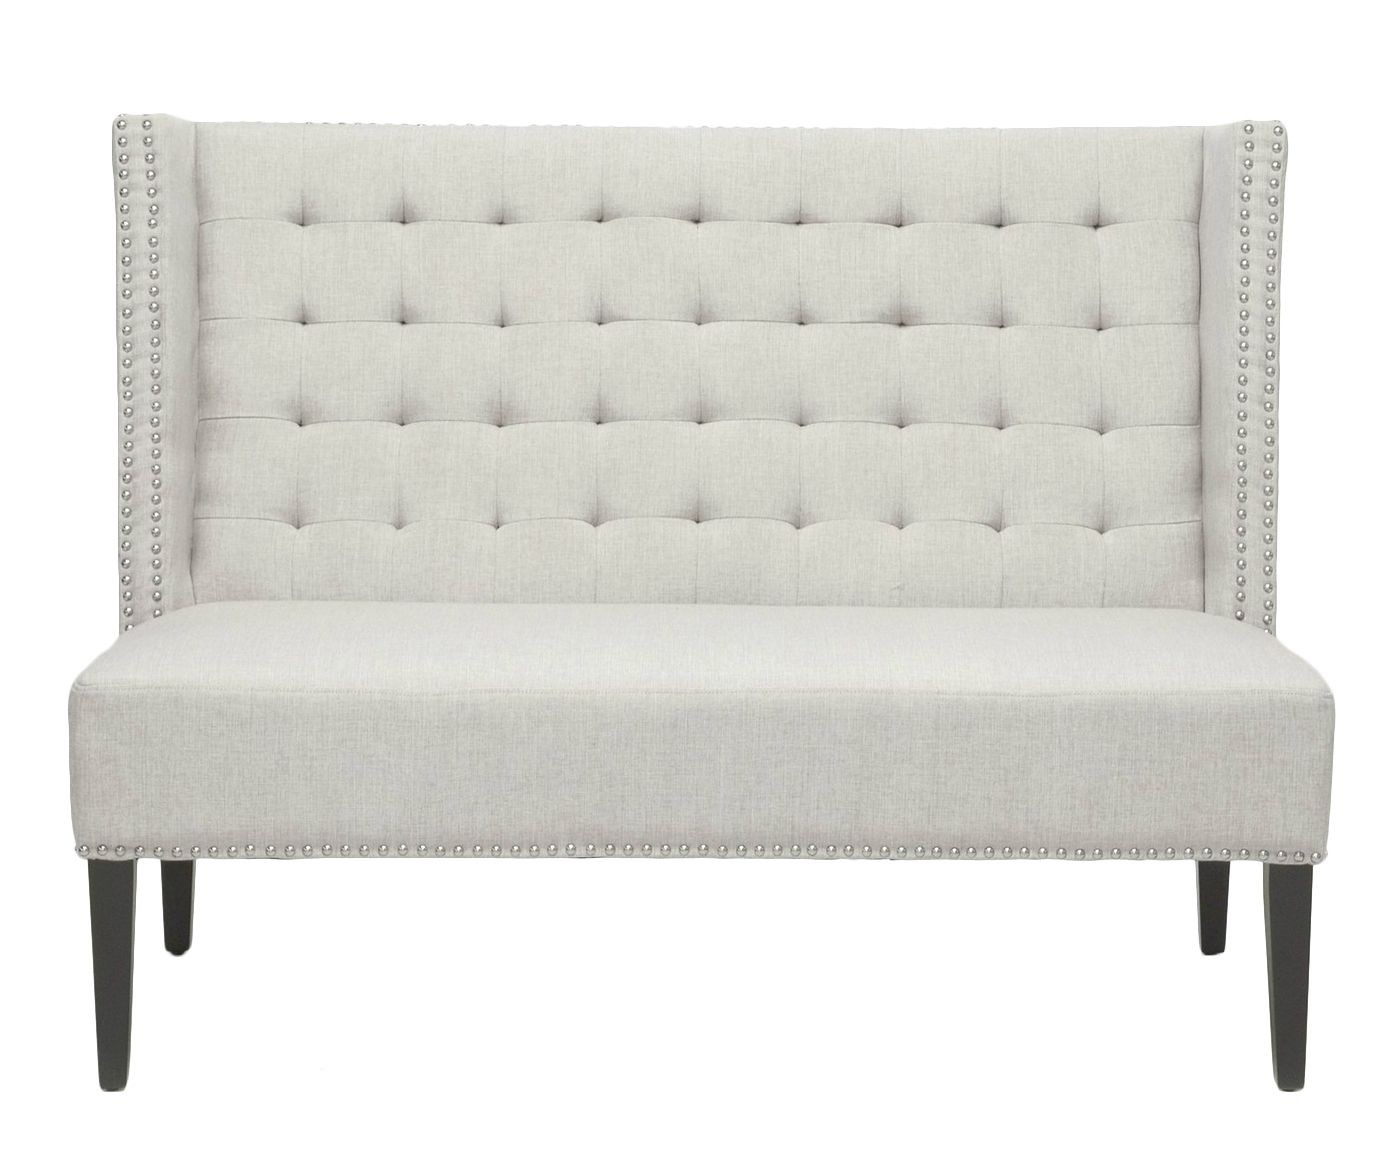 Attractive Upholstered Dining Bench With Back